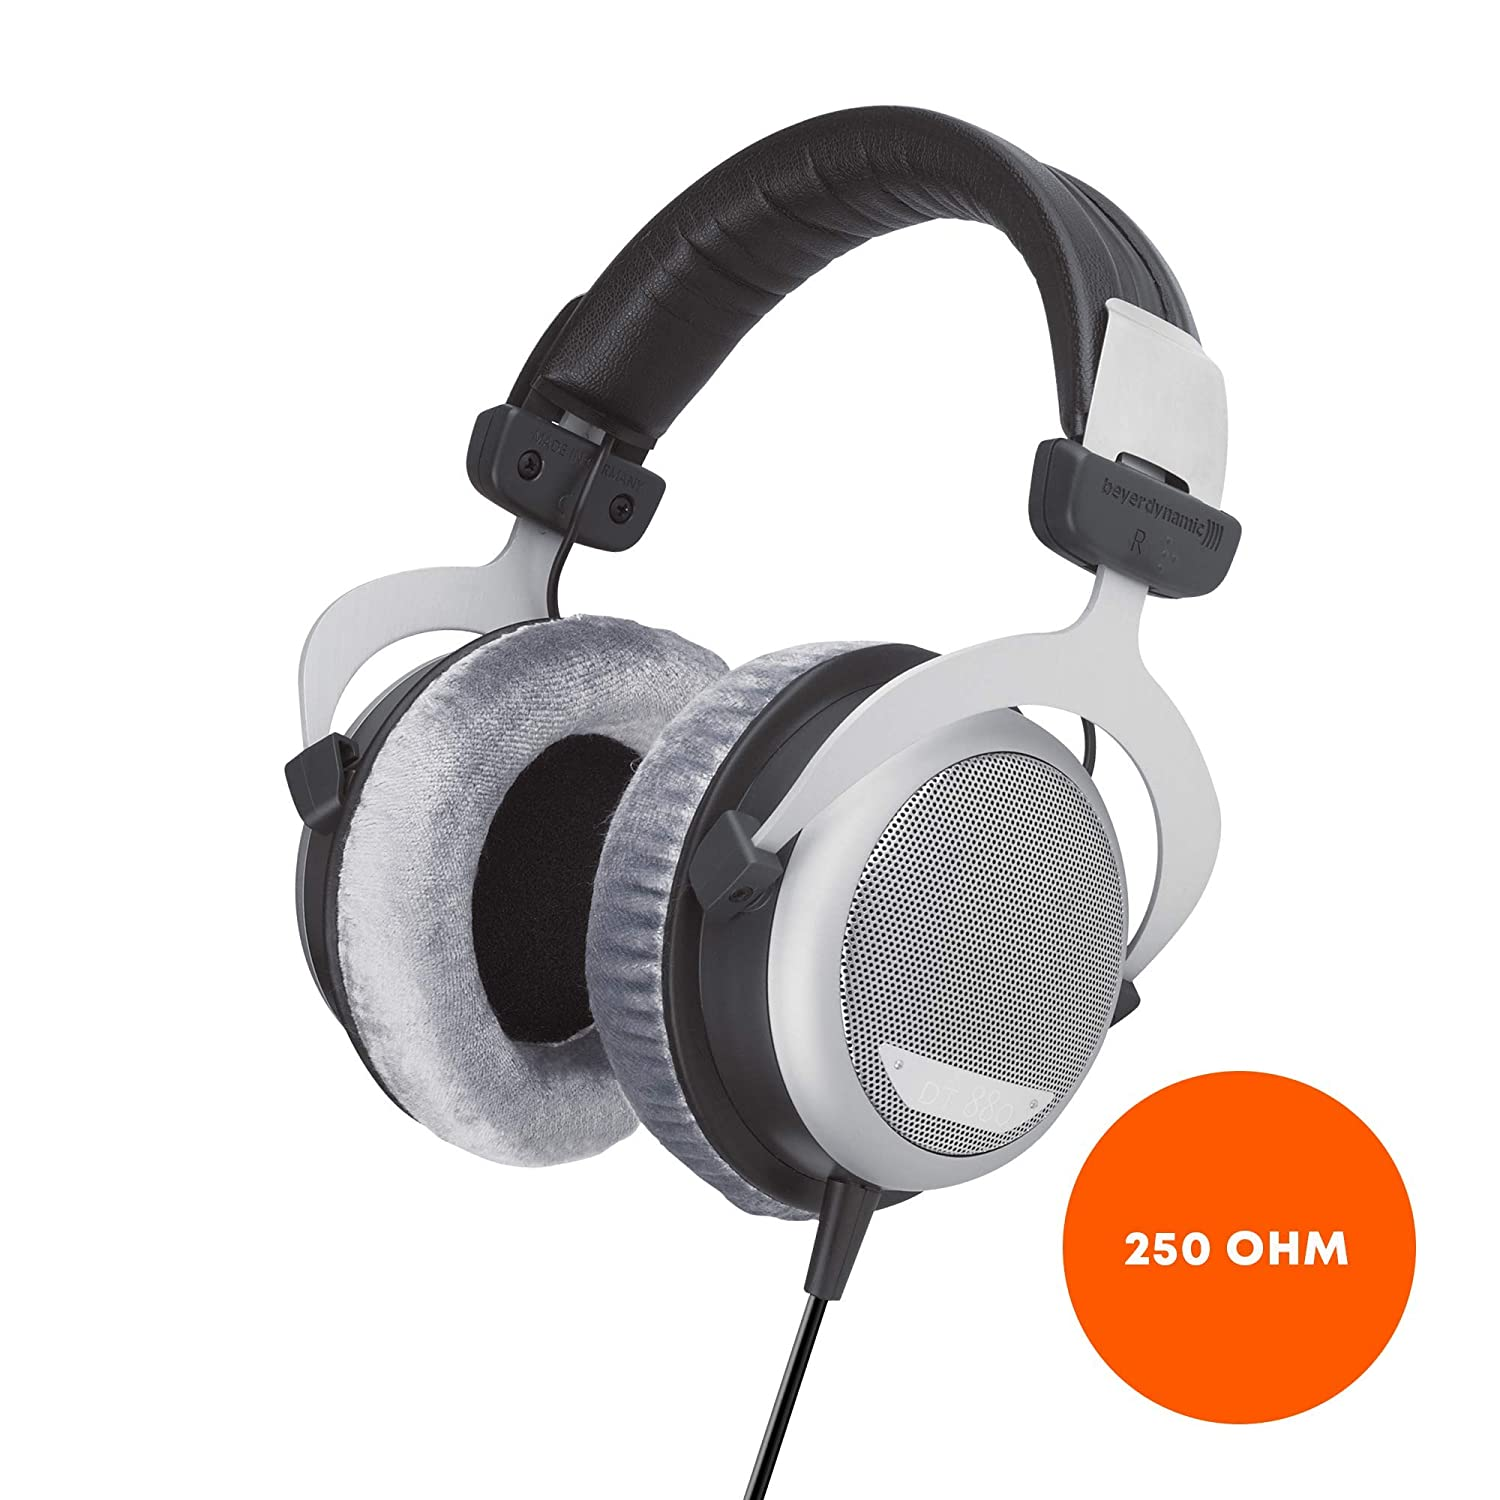 High End Headphones >> Beyerdynamic Dt 880 Premium Edition 250 Ohm Over Ear Stereo Headphones Semi Open Design Wired High End For The Stereo System